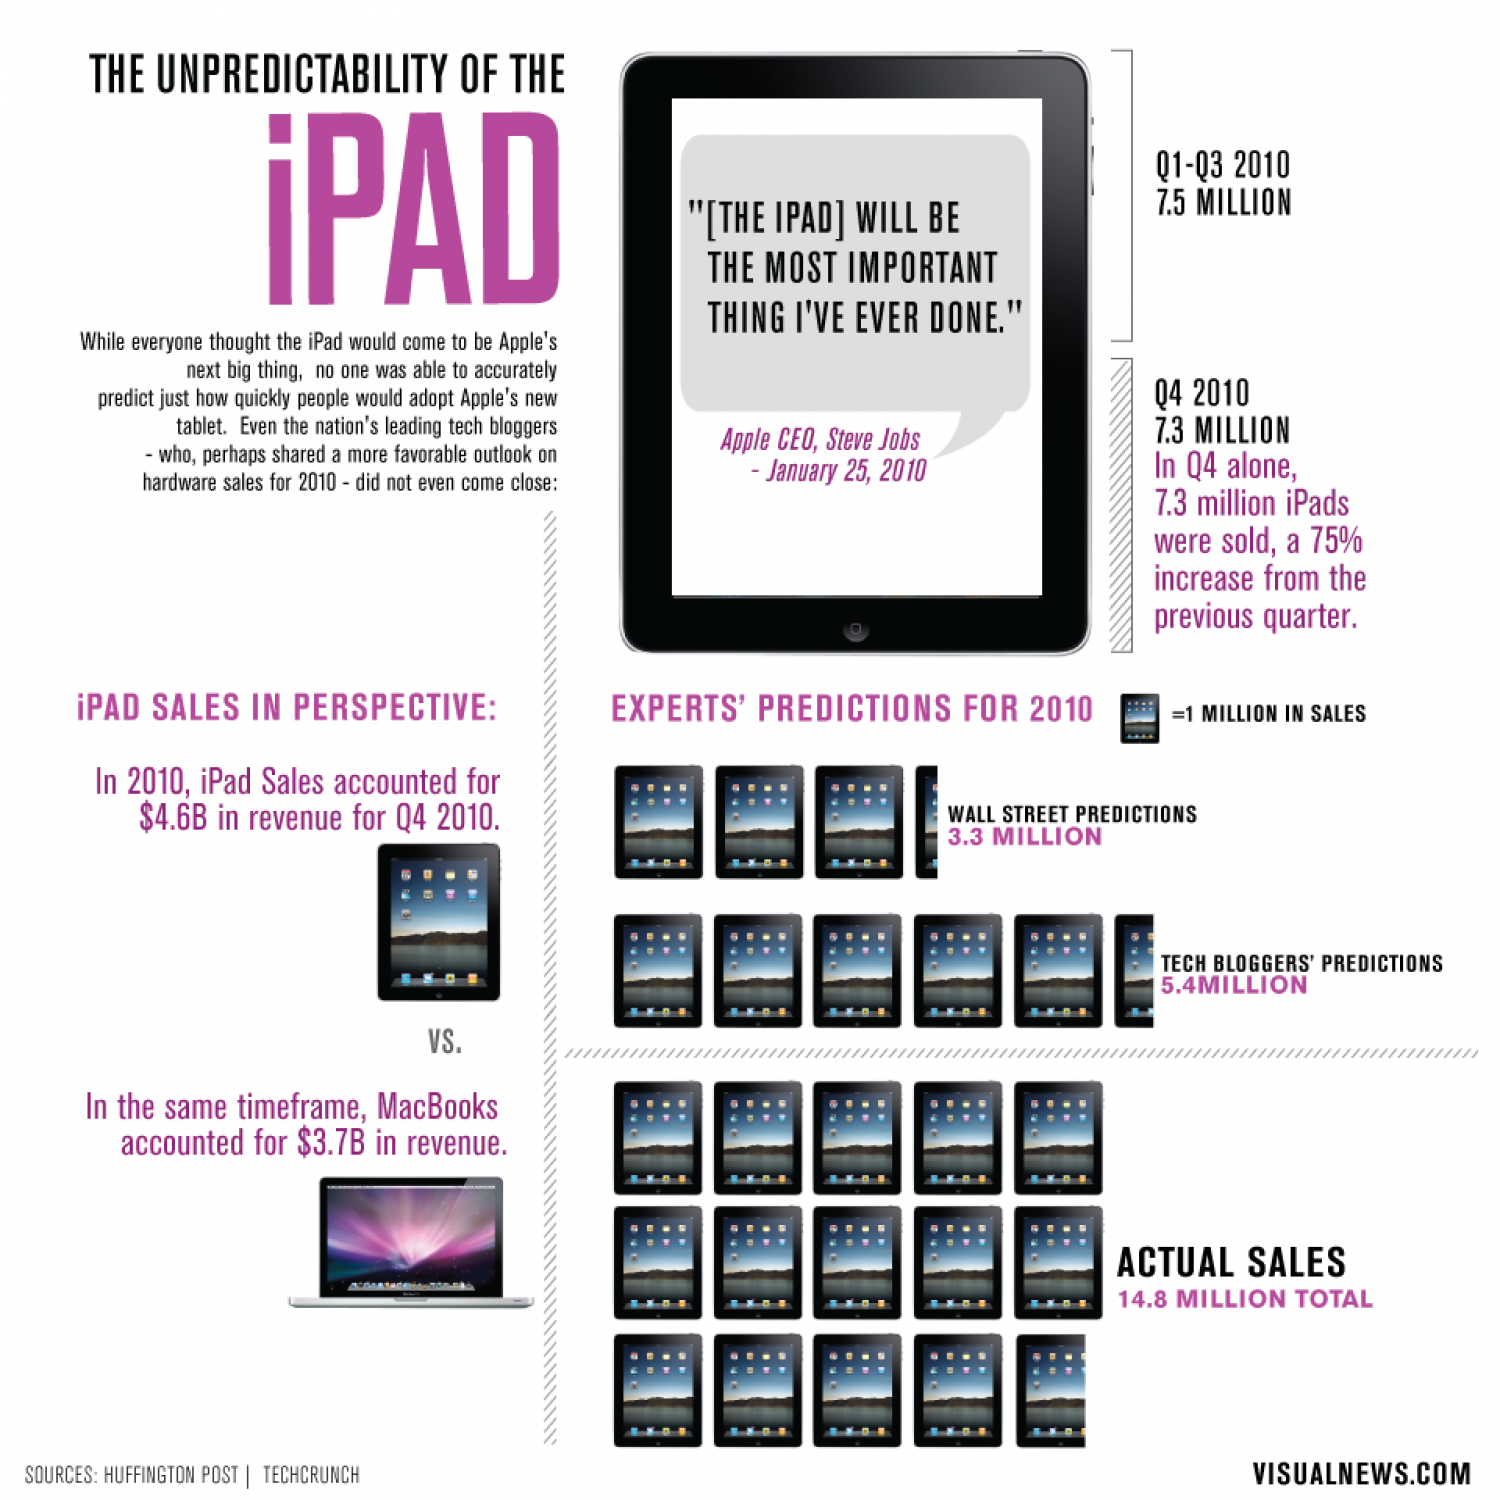 The Unpredictability of the iPad Infographic